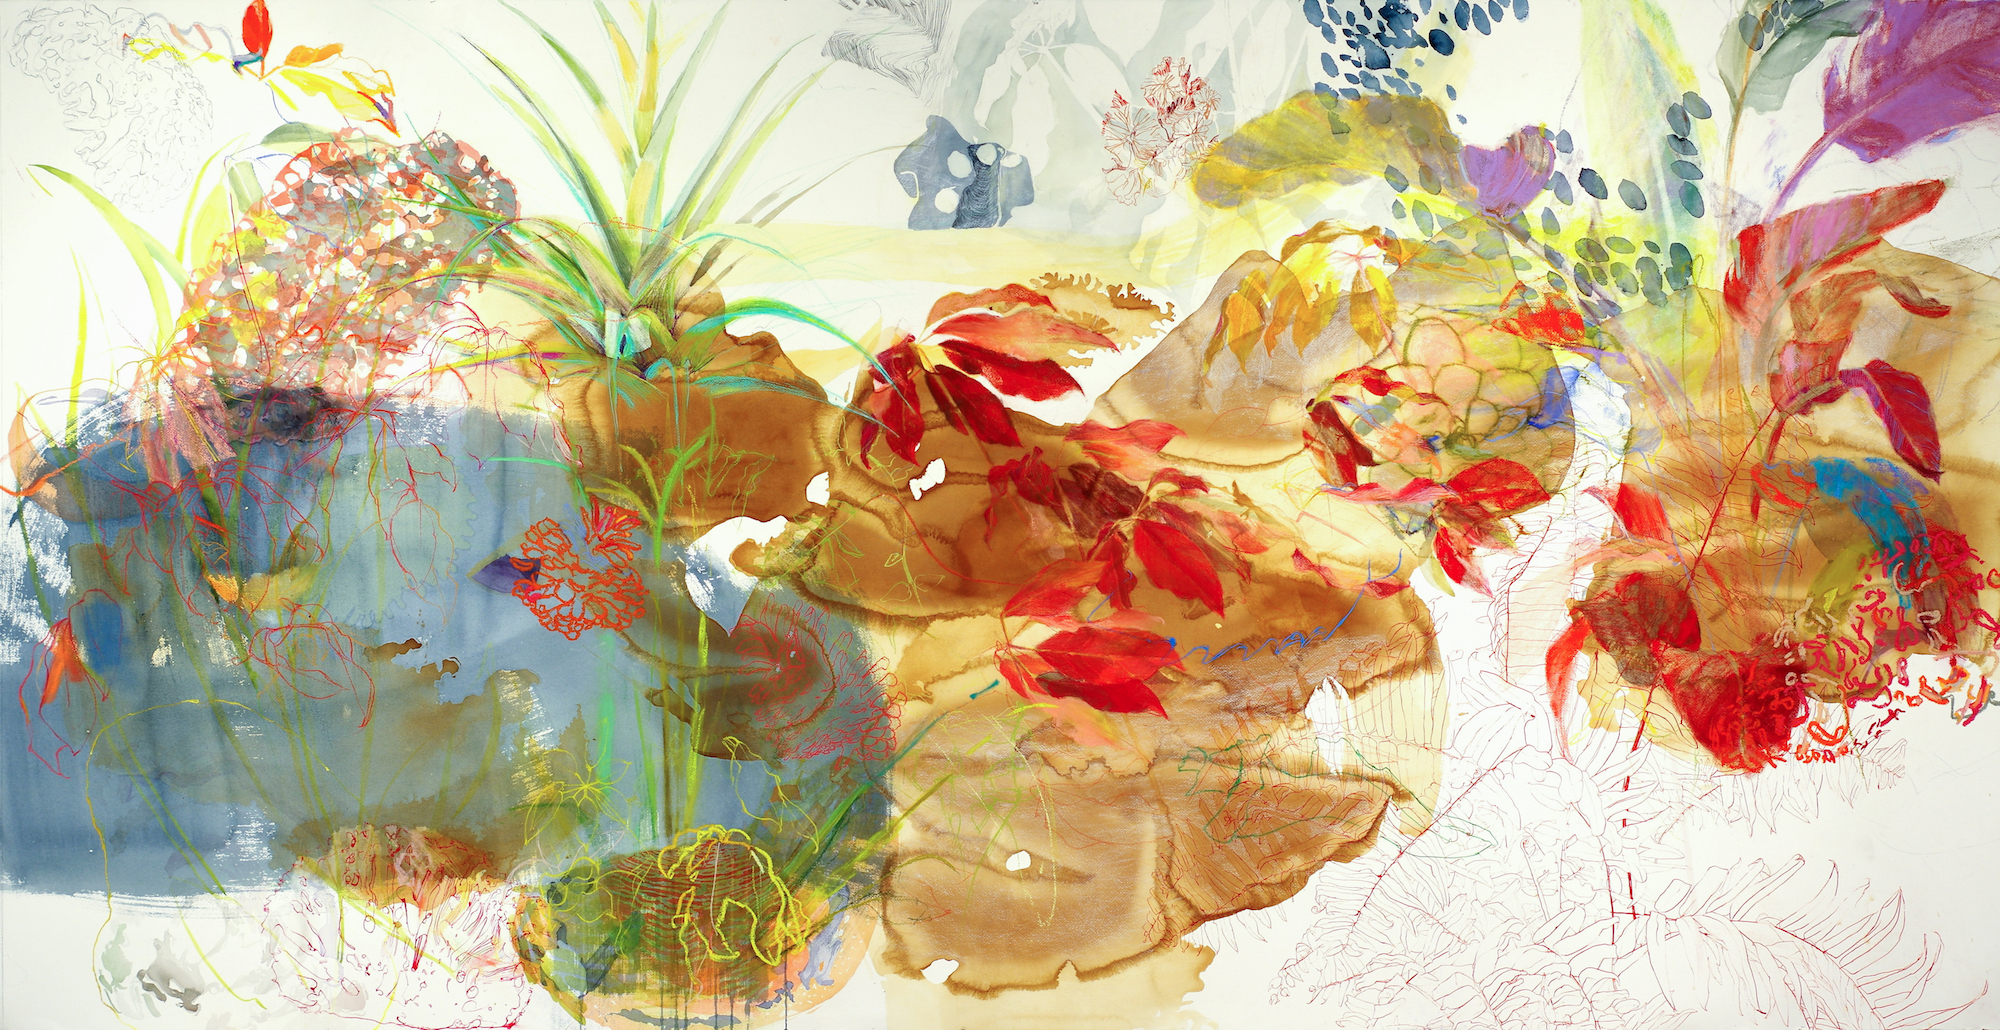 Melissa Mohammadi,  Landscape 10 ,tea, ink, watercolor, pastel on paper,44 x 86 inches,2016